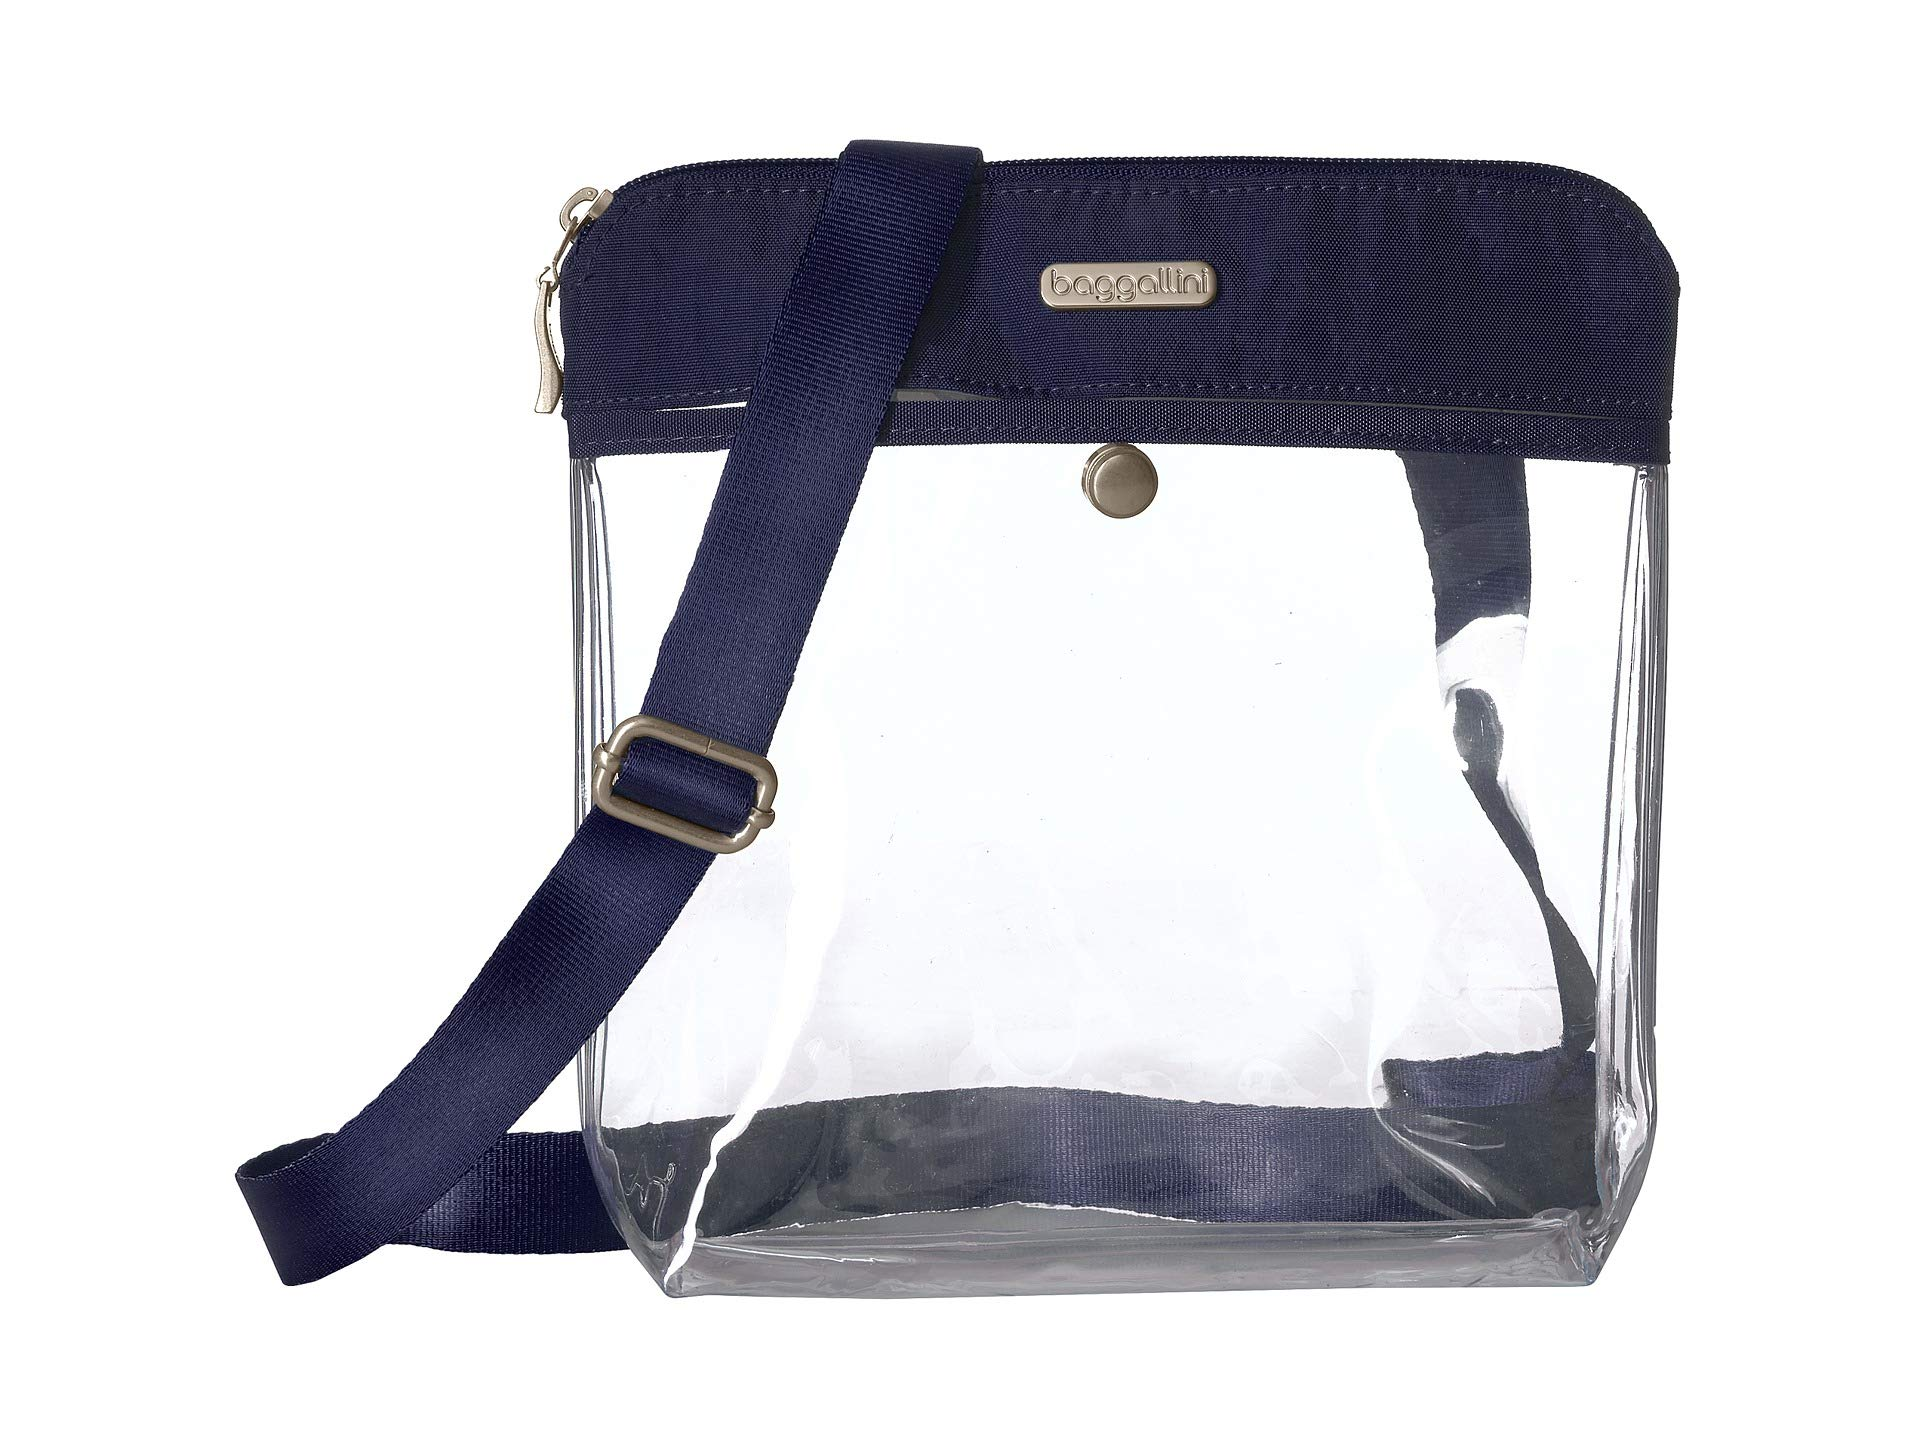 Blue Clear Bags Stadium Dark Legacy Baggallini Crossbody Pocket 0zp7xqw